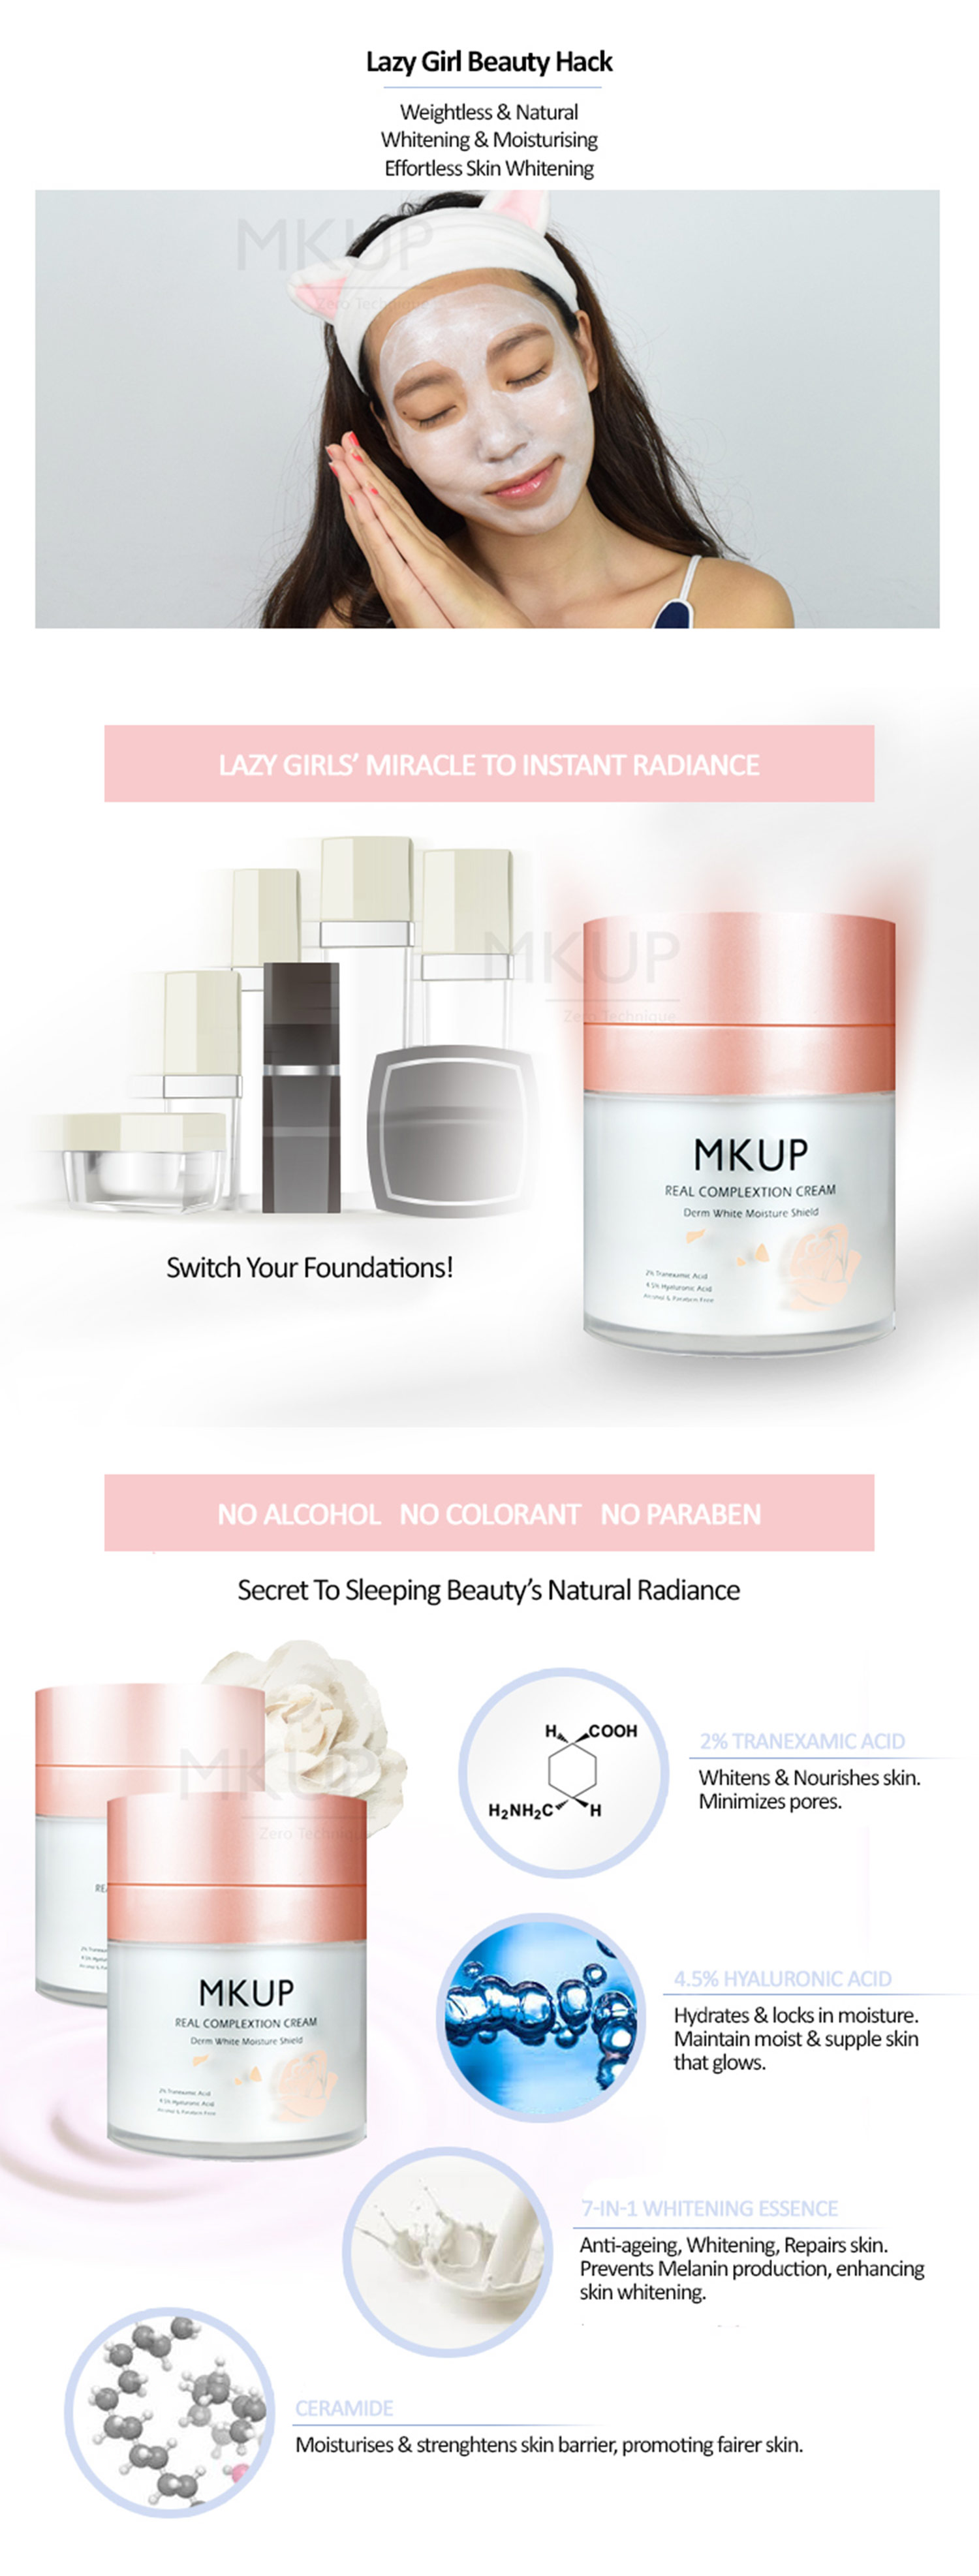 Real Complexion Cream - Ingredient